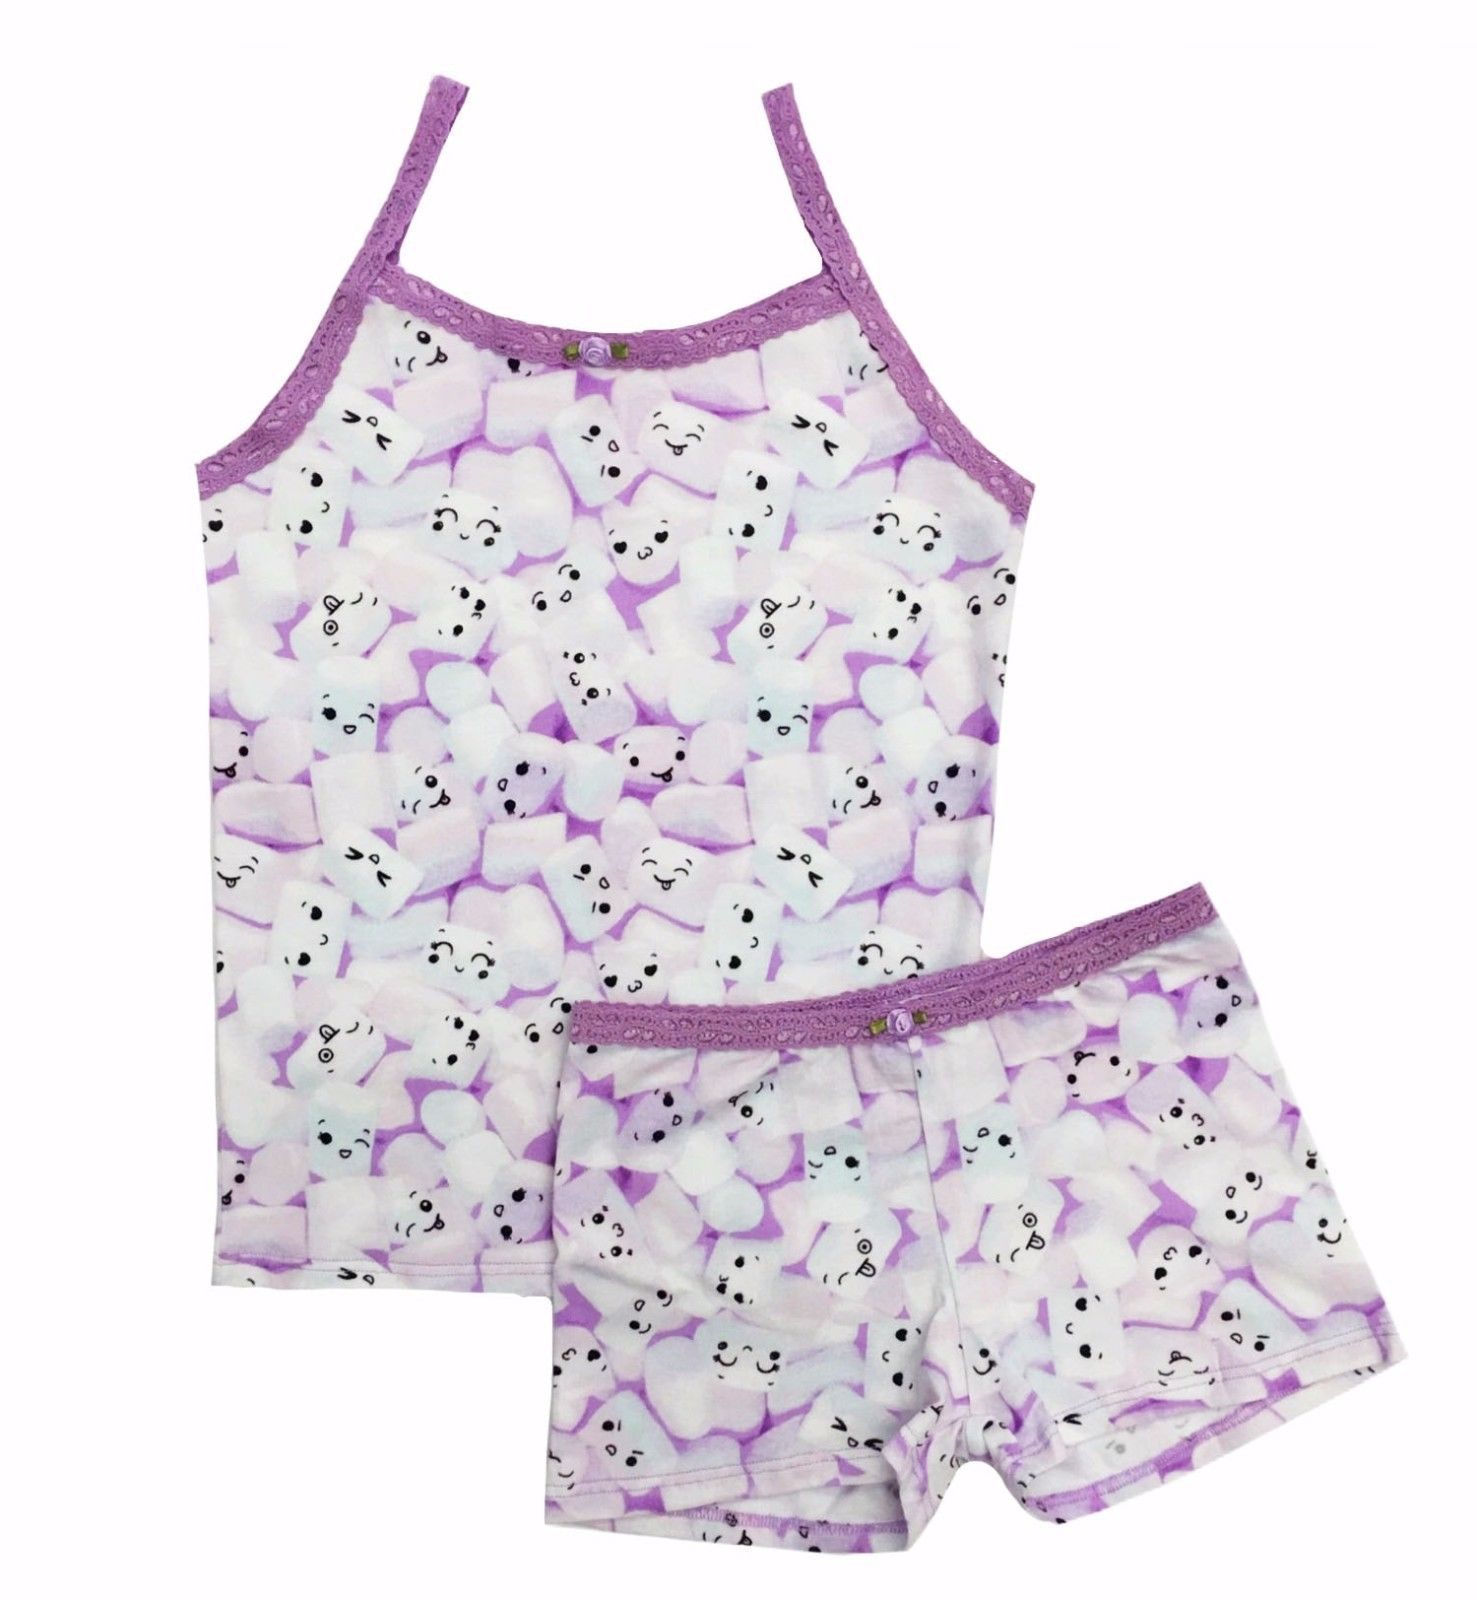 b85047e6cdbb9 Underwear 147219: Esme Girls Sleepwear Camisole Boxer Shorts Set Size 7  Marshmallow -> BUY IT NOW ONLY: $39.97 on eBay!